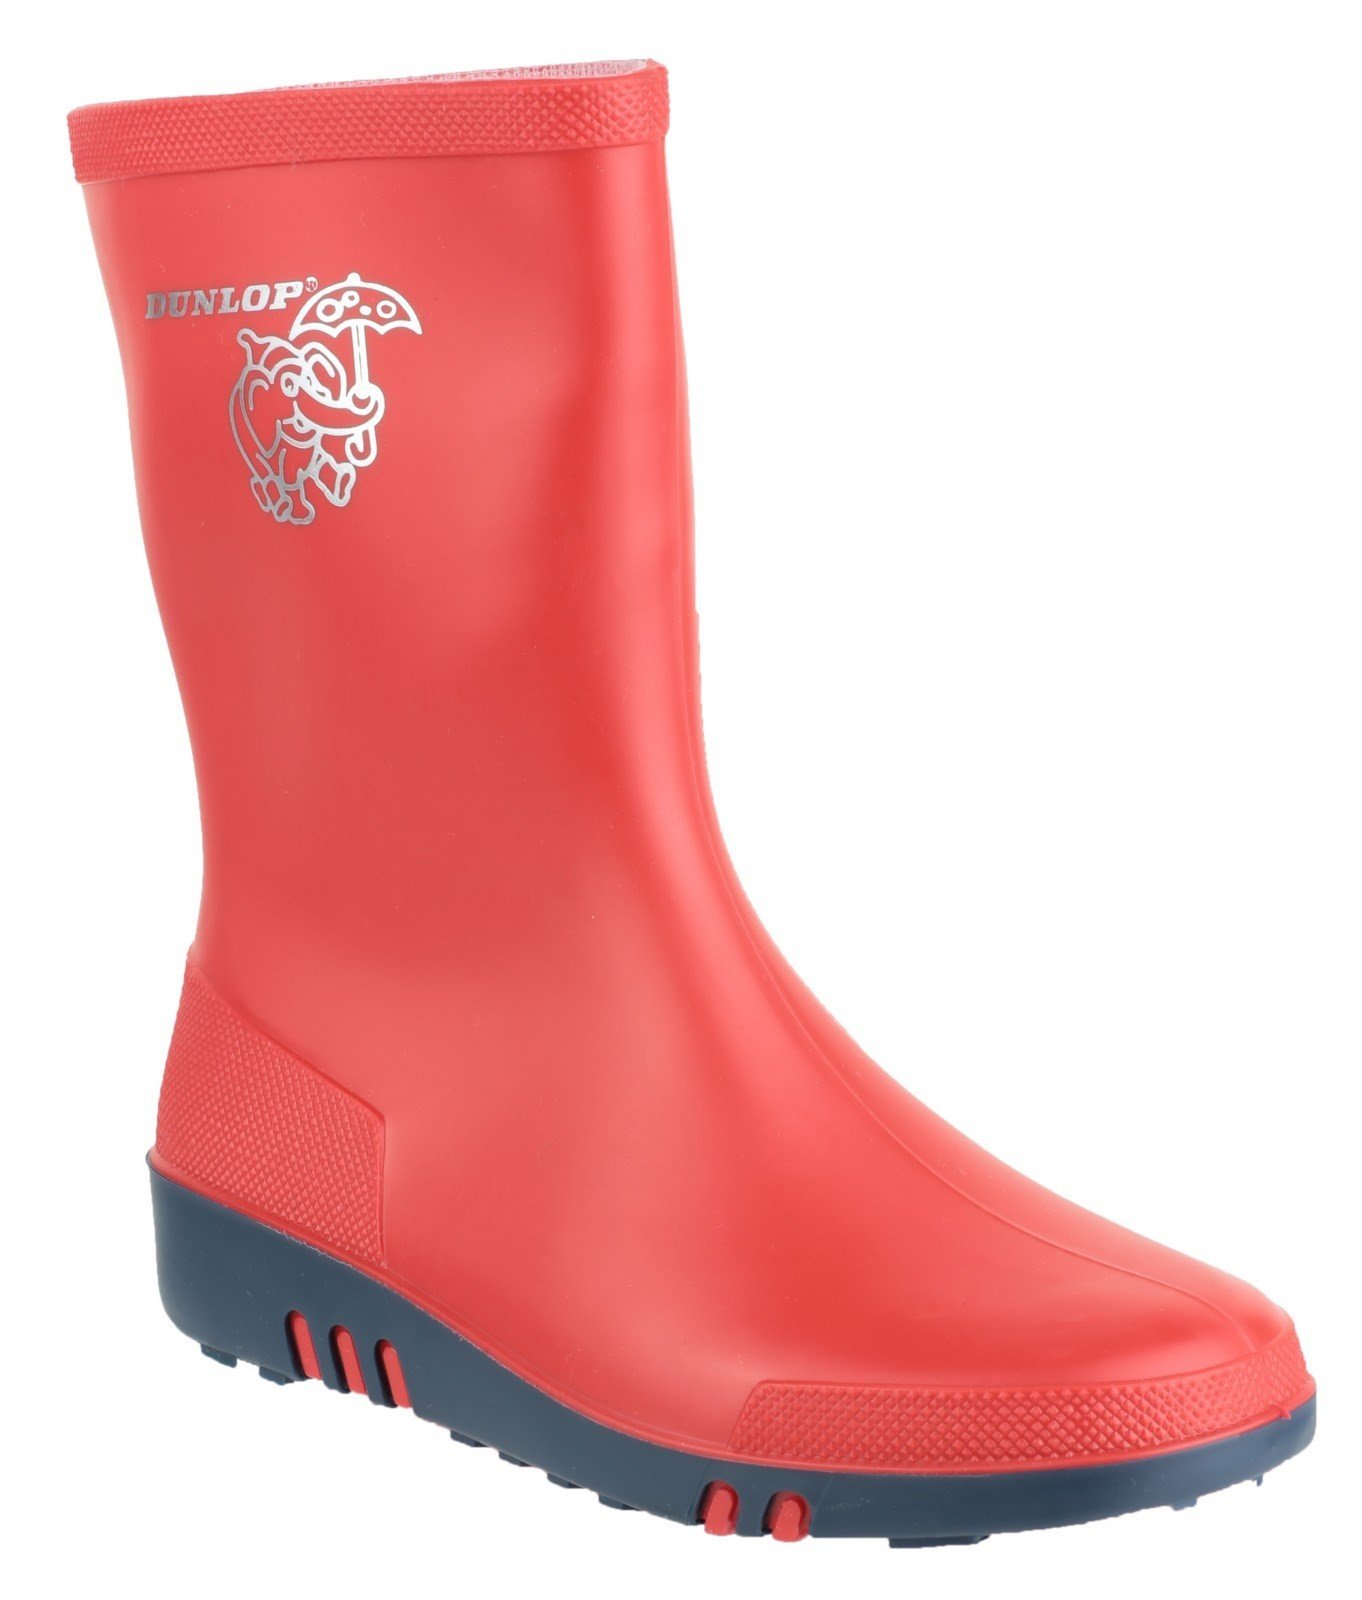 Dunlop Kid's Mini Wellington Boot Red 21816 - Red/bl 7.5